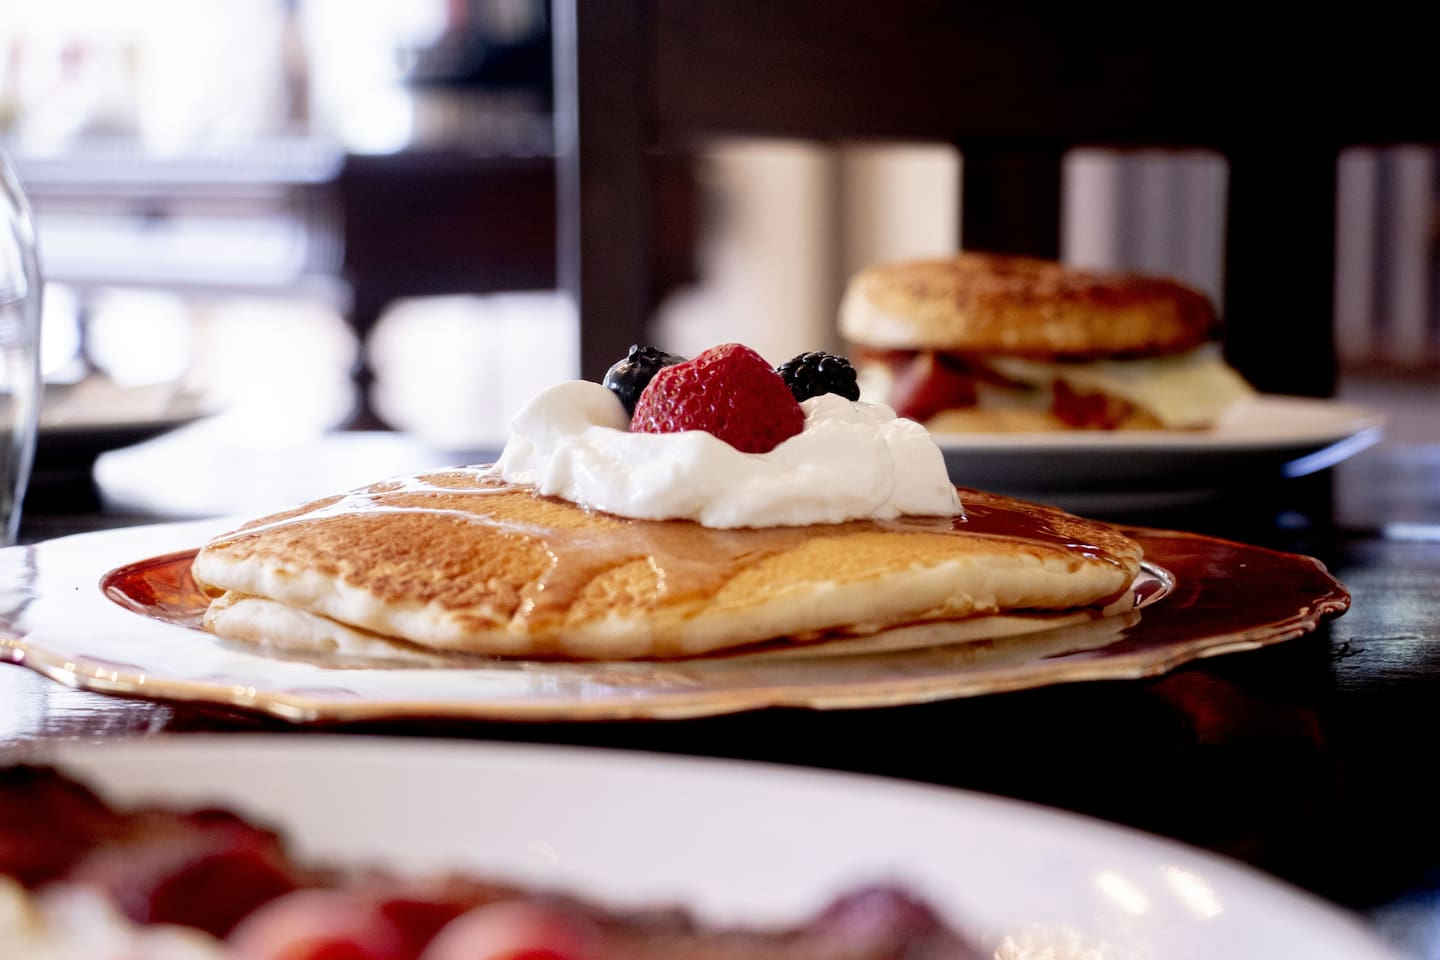 Hot pancakes with fruit or a wide variety of sauces and syrups.